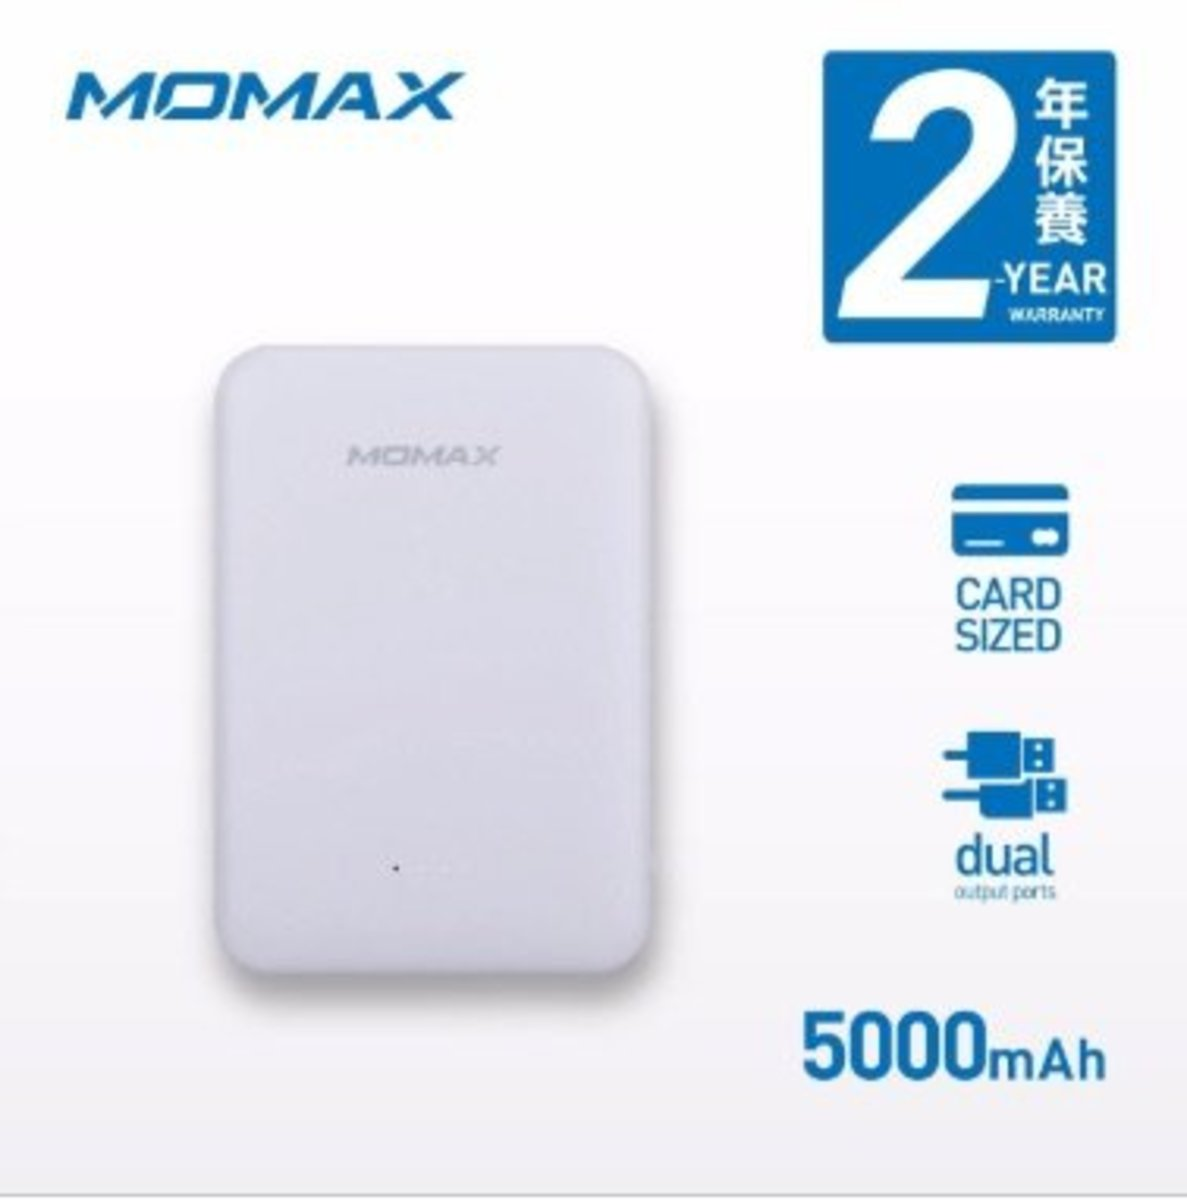 iPower Card 2 流動電源 5000mAh - 白色